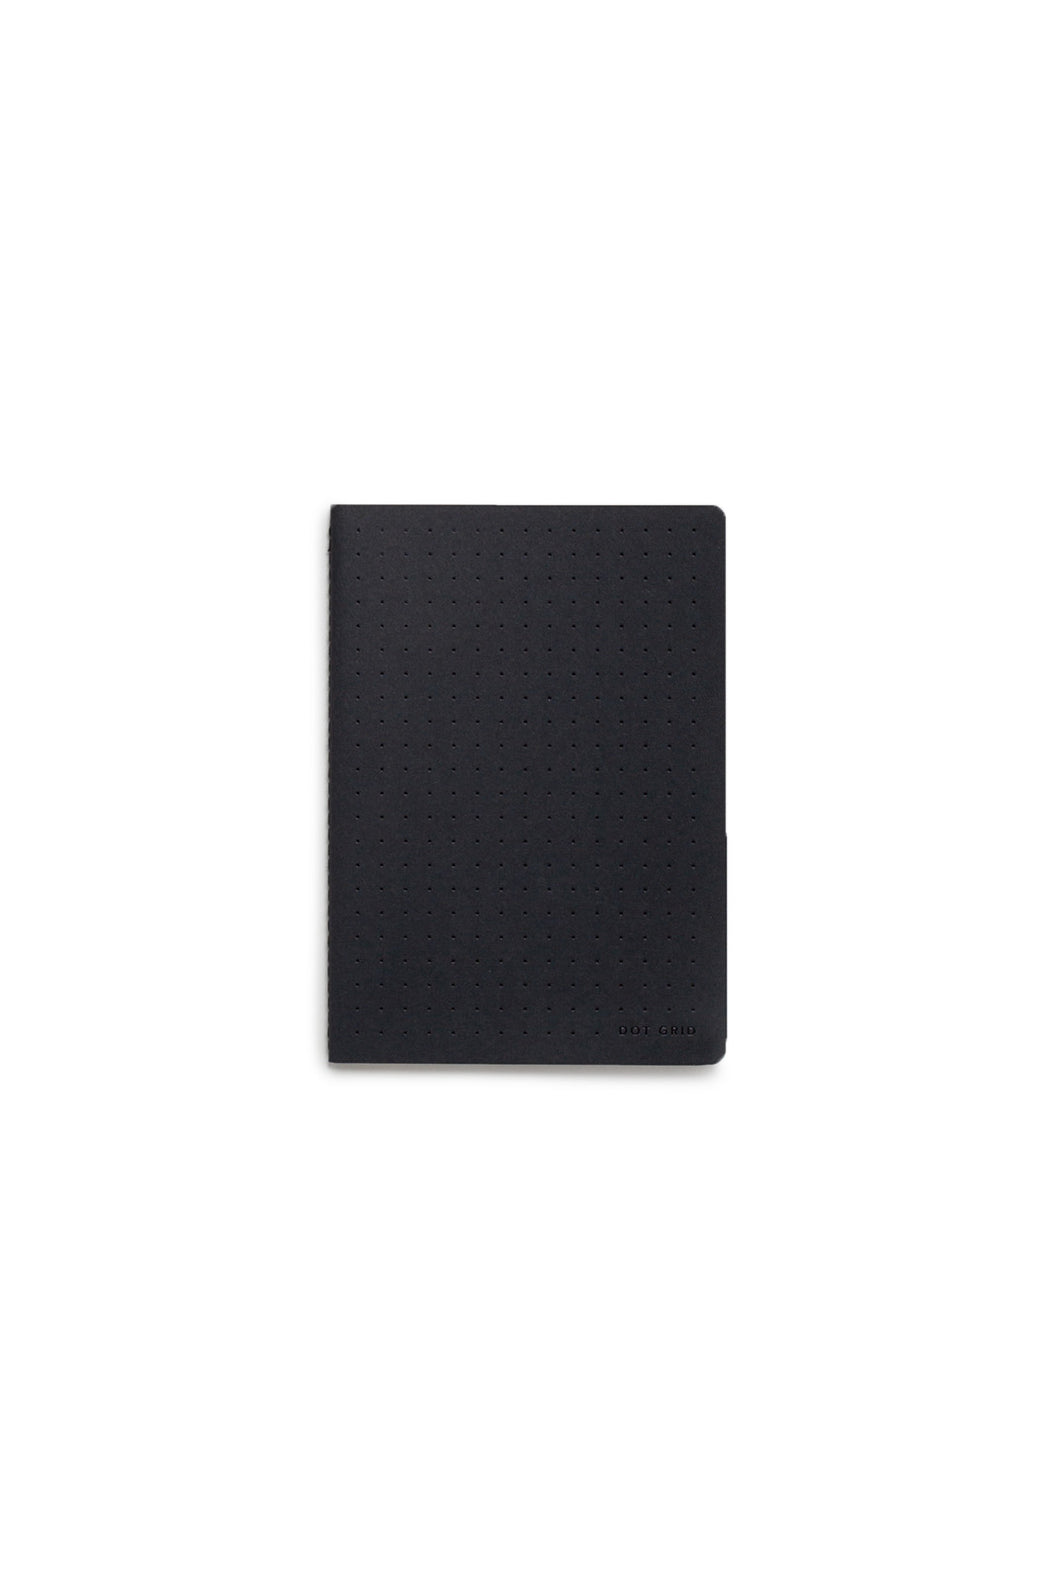 MiGoals - Dot Grid Journal - A5 - Soft Cover - Black